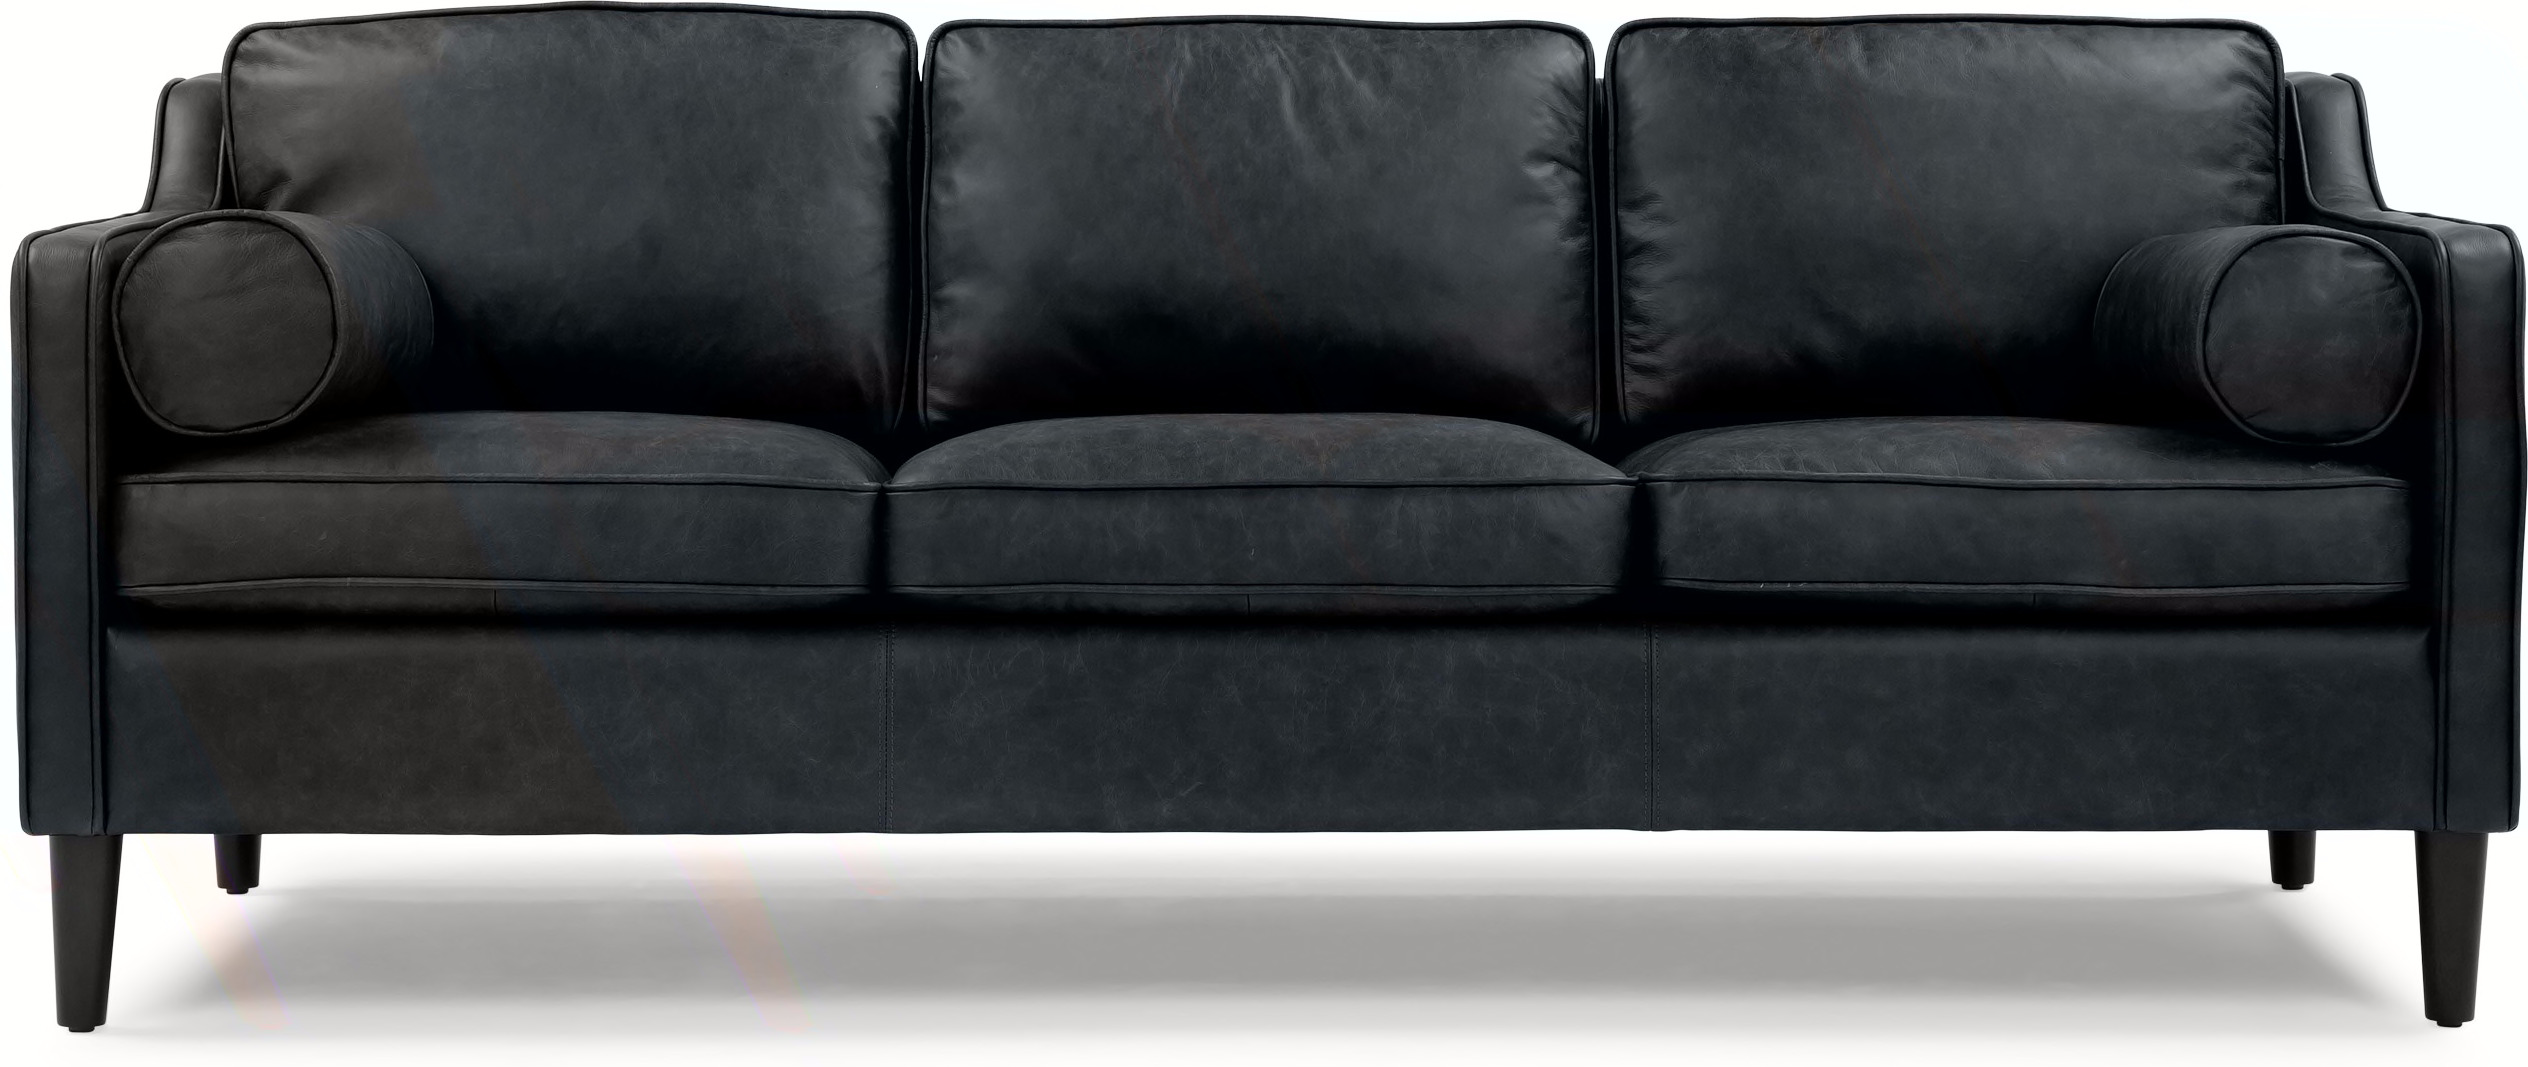 cheap three seater sofa flexsteel capitol power buy 3 black leather compare sofas